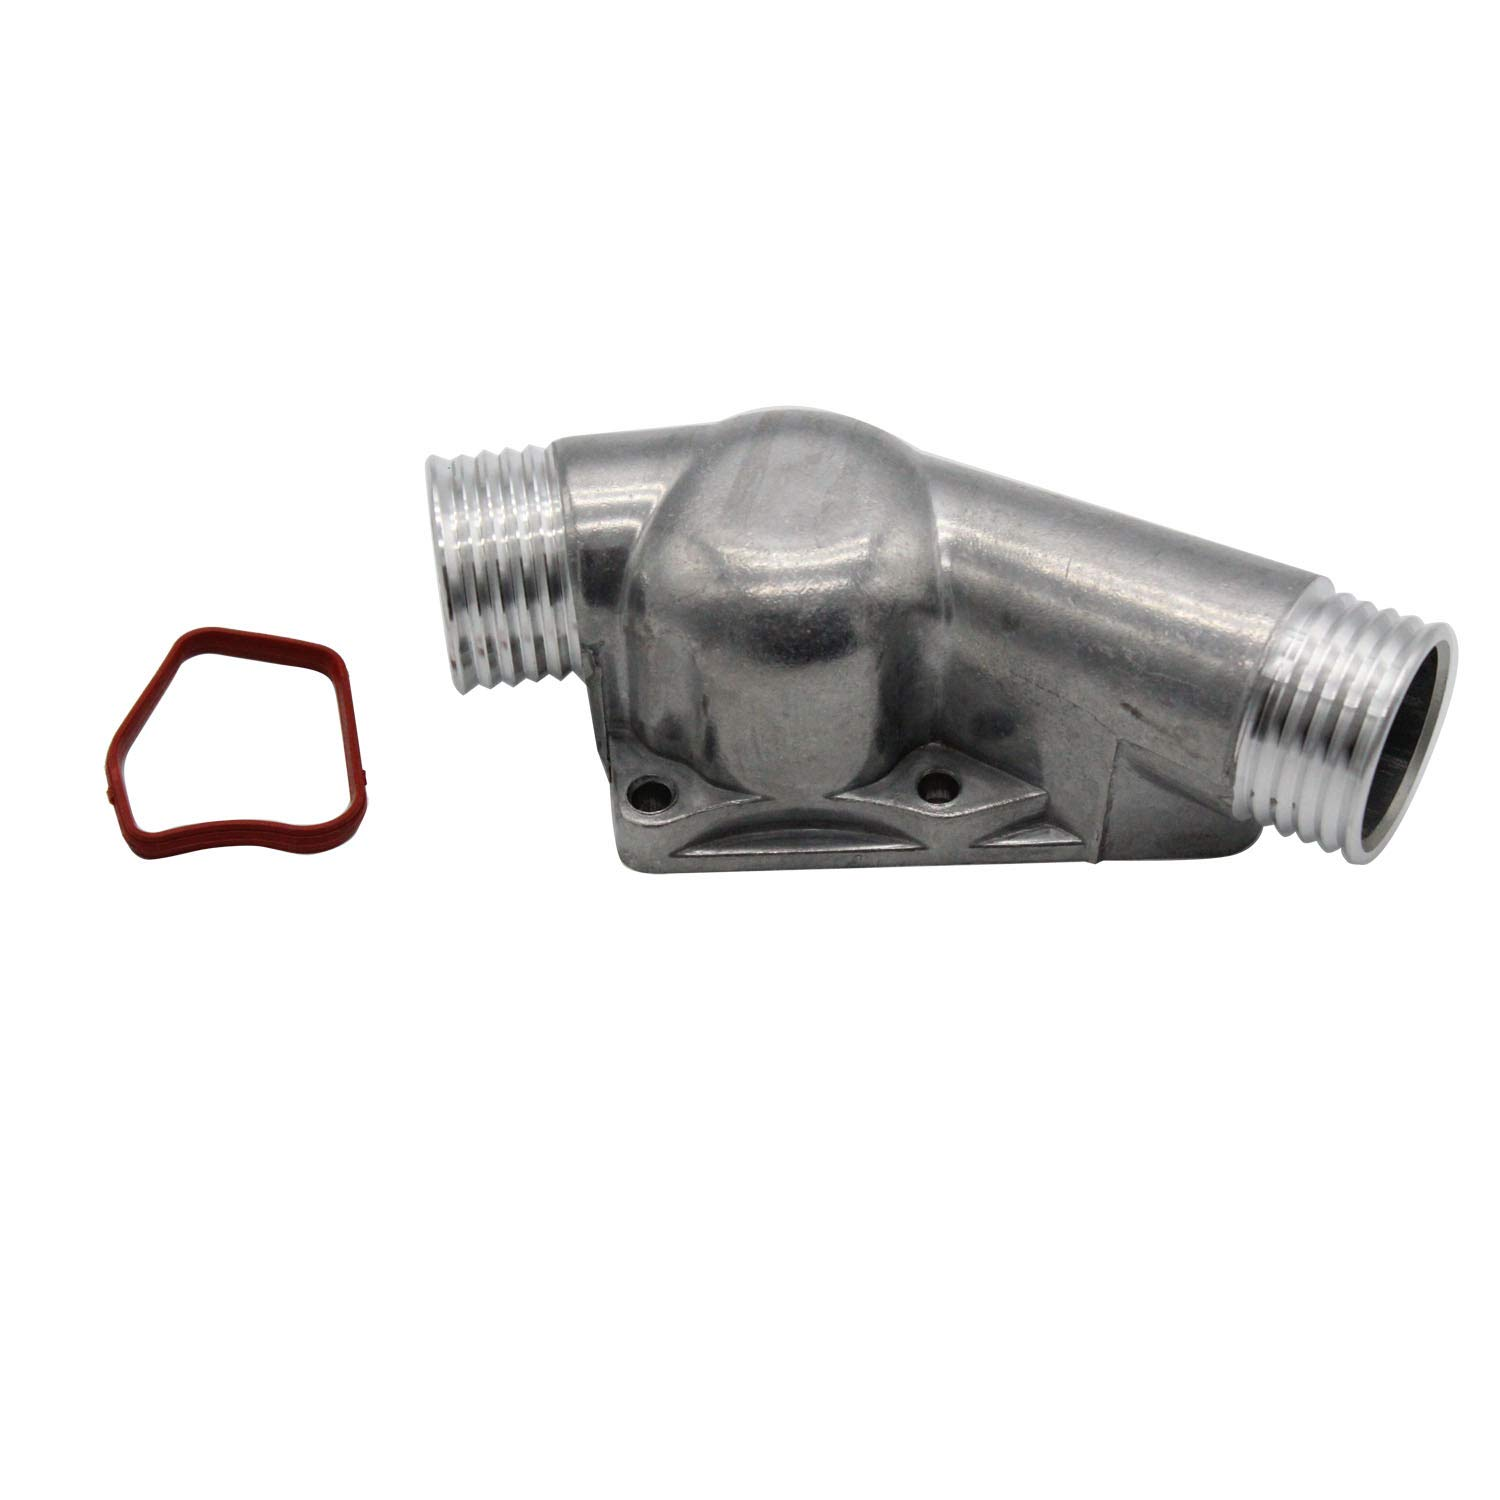 URO Parts 11 53 1 722 531-PRM Aluminum Thermostat Cover